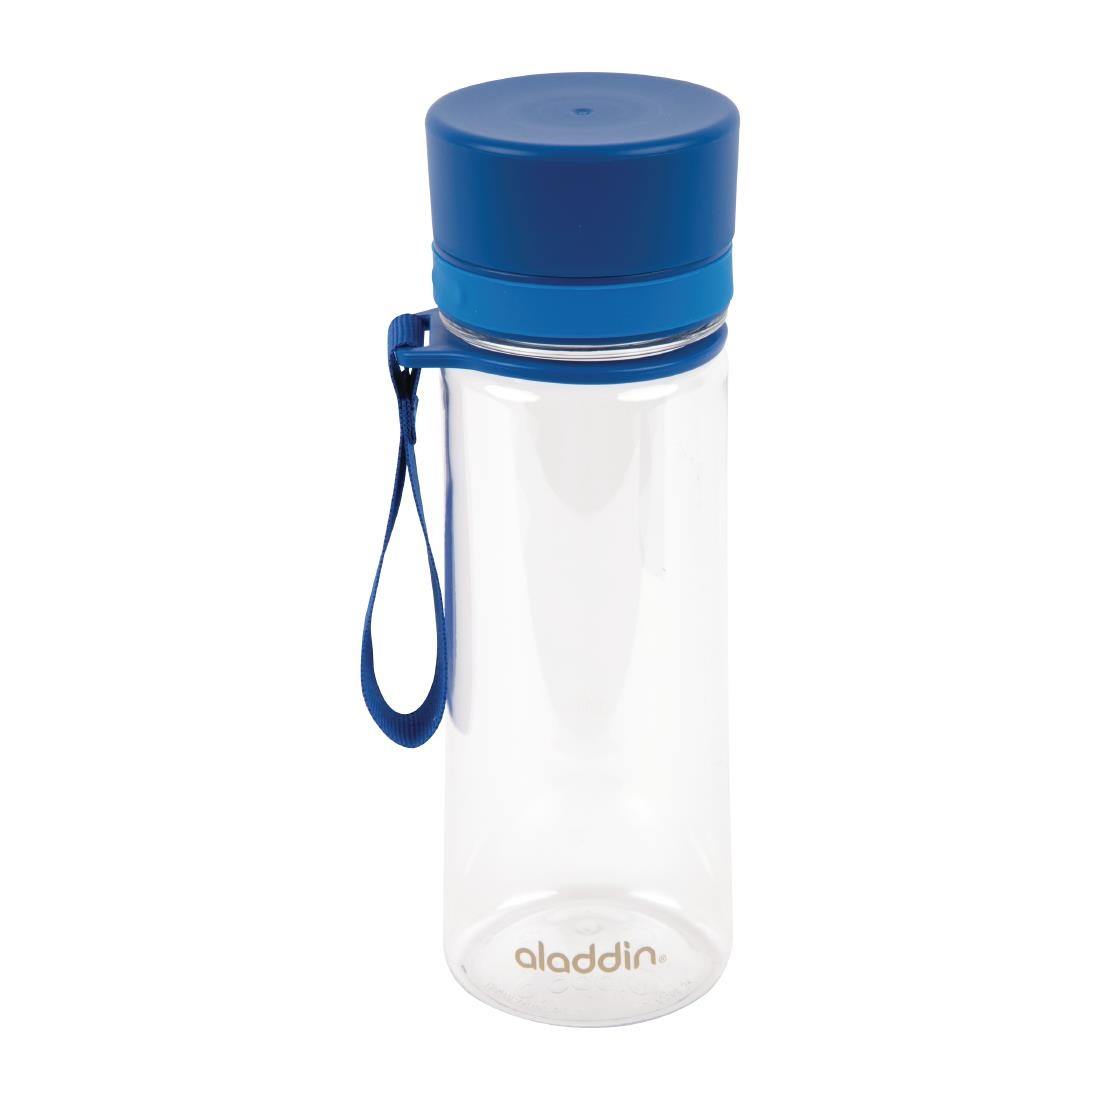 Image of Aladdin Aveo Reusable Water Bottle Blue 350ml / 12oz